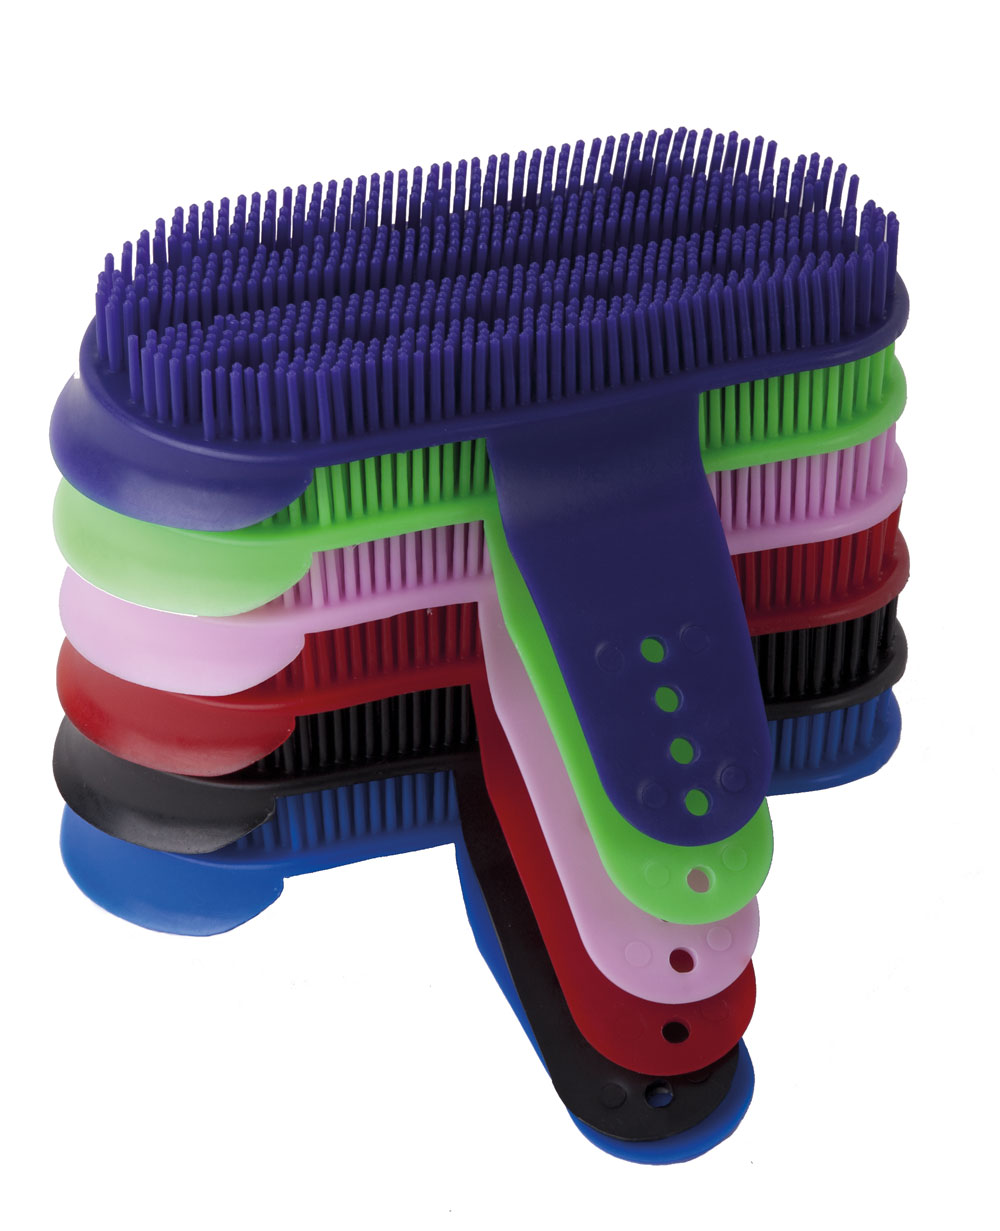 Harlequin Plastic Grooming Curry Comb